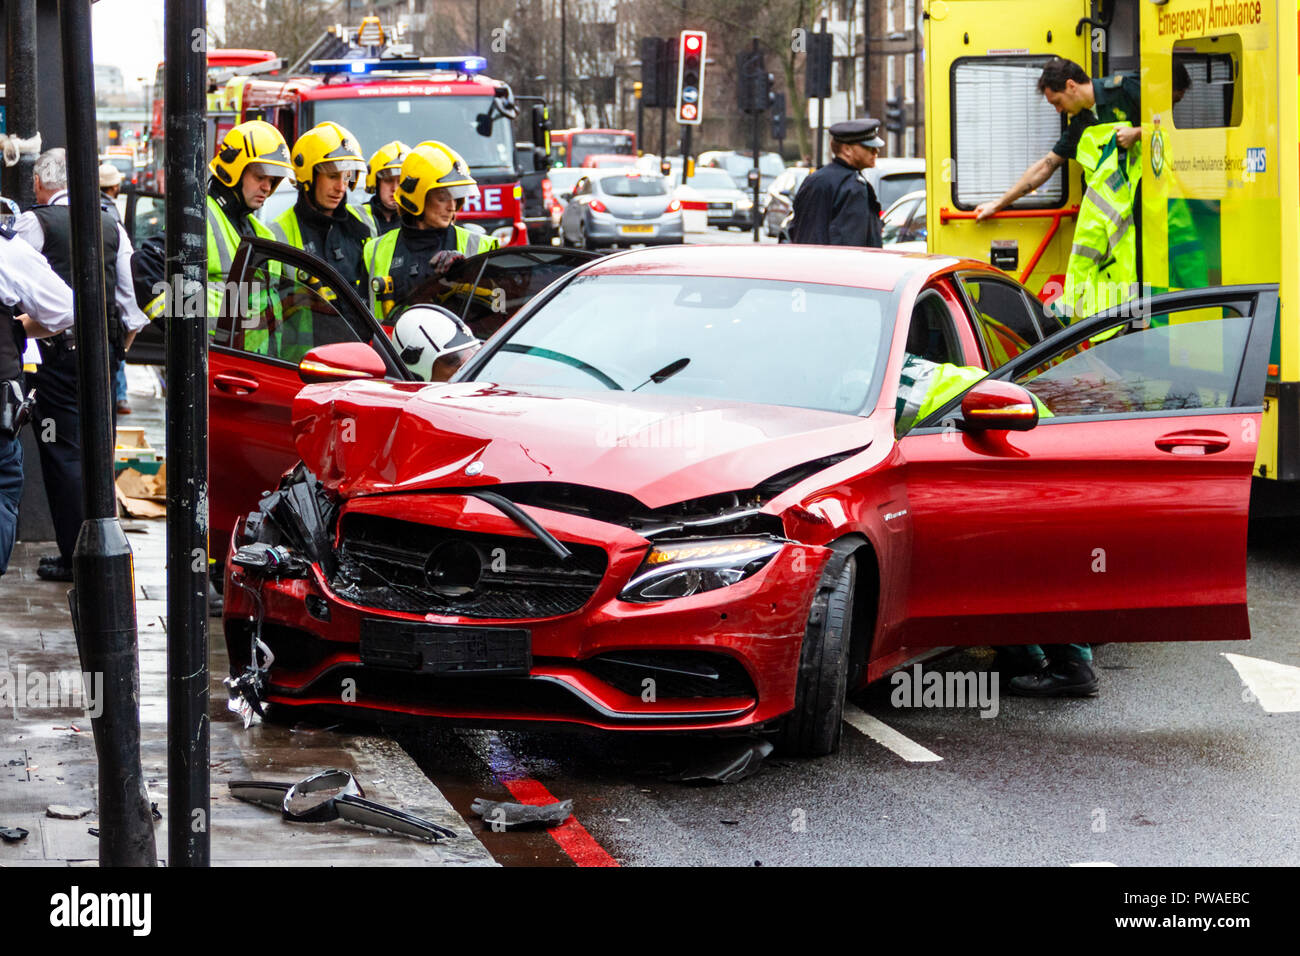 Firefighters, paramedics and police attend a road traffic incident involving a red car in Holloway, London, UK in January 2016. Luckily no one was hurt - Stock Image